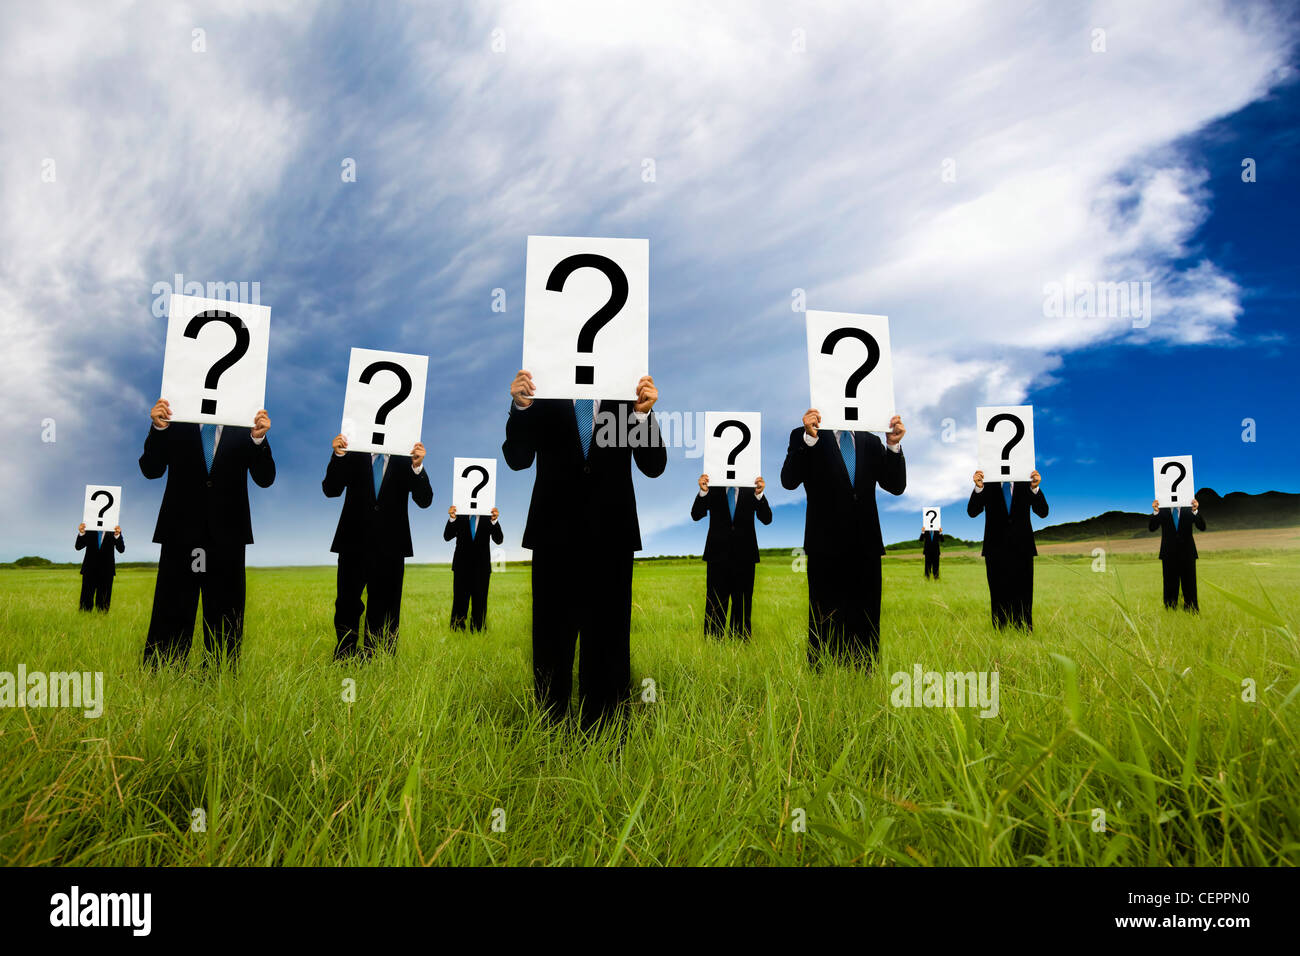 group of businessman in black suit and holding question mark symbol - Stock Image